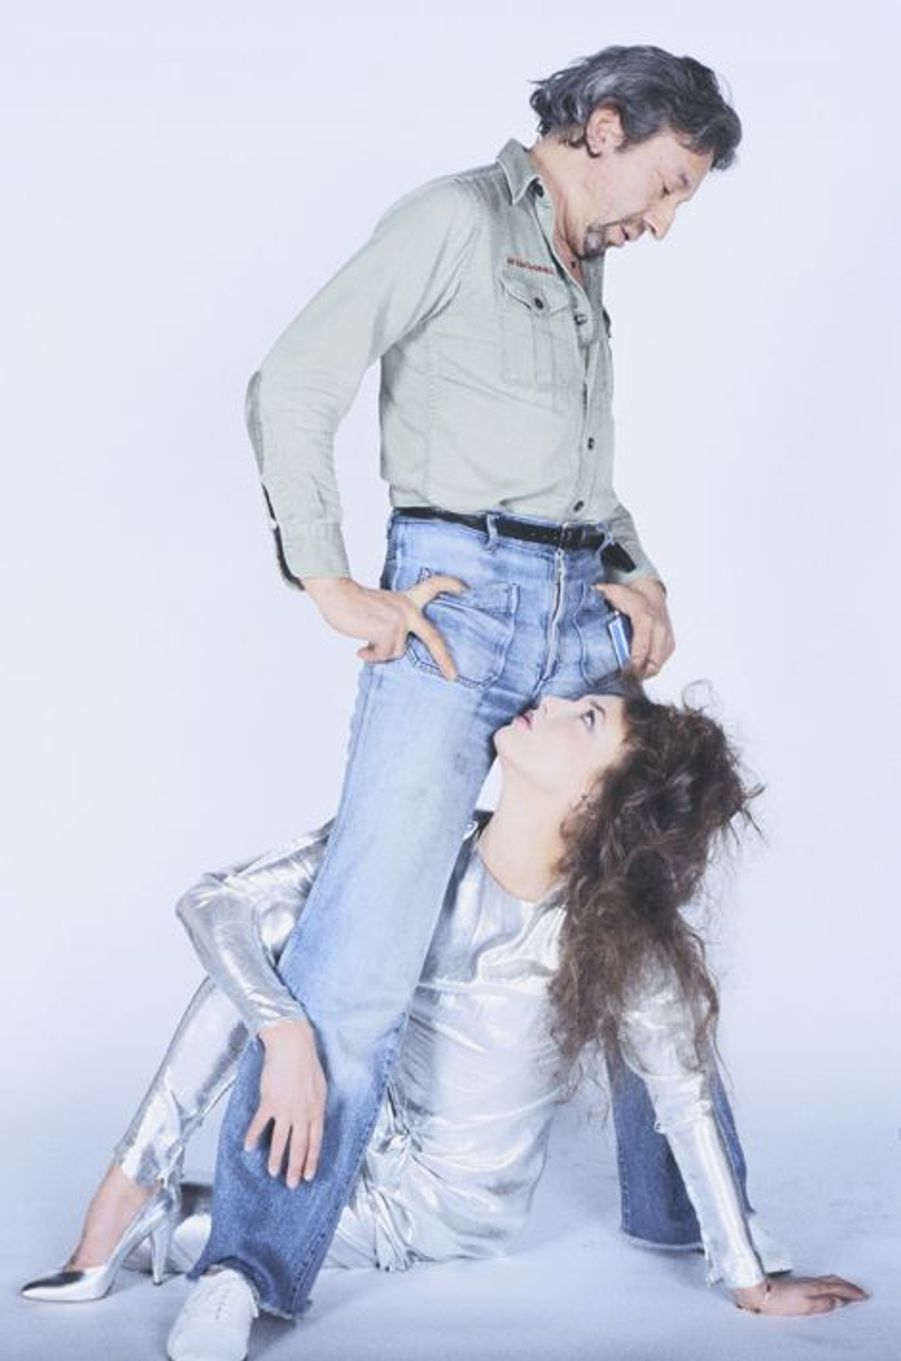 Photo en studio de Serge Gainsbourg et Jane Birkin, Mars 1979